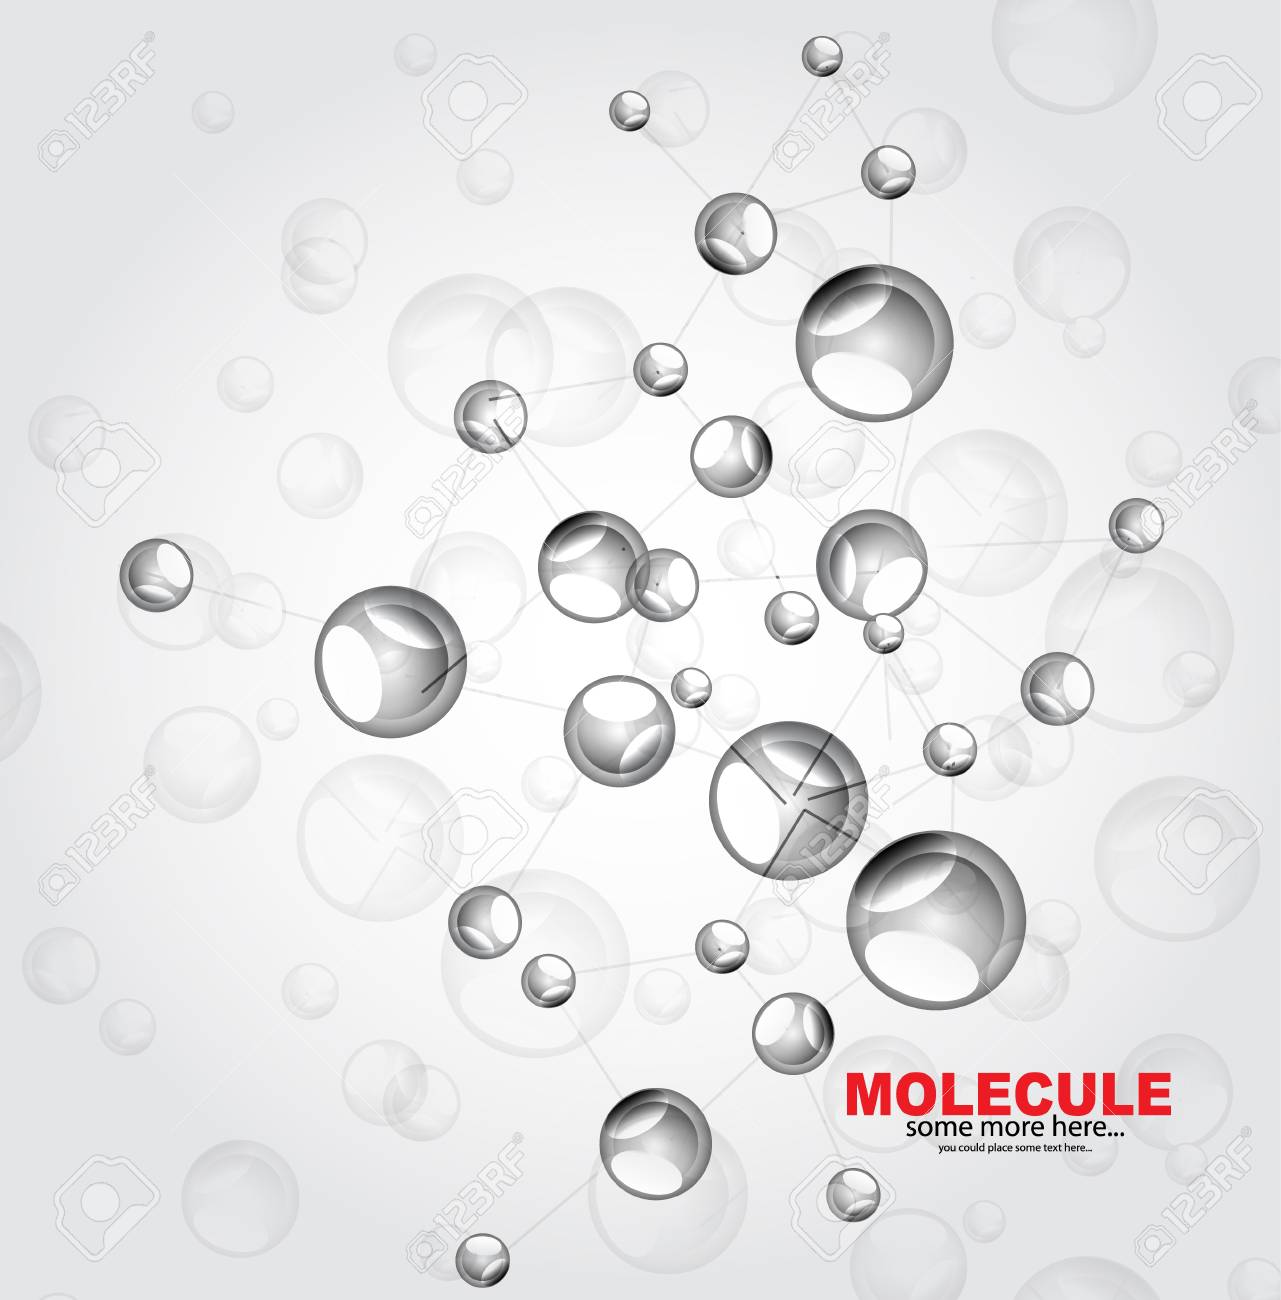 Glossy molecules background Stock Vector - 18053704